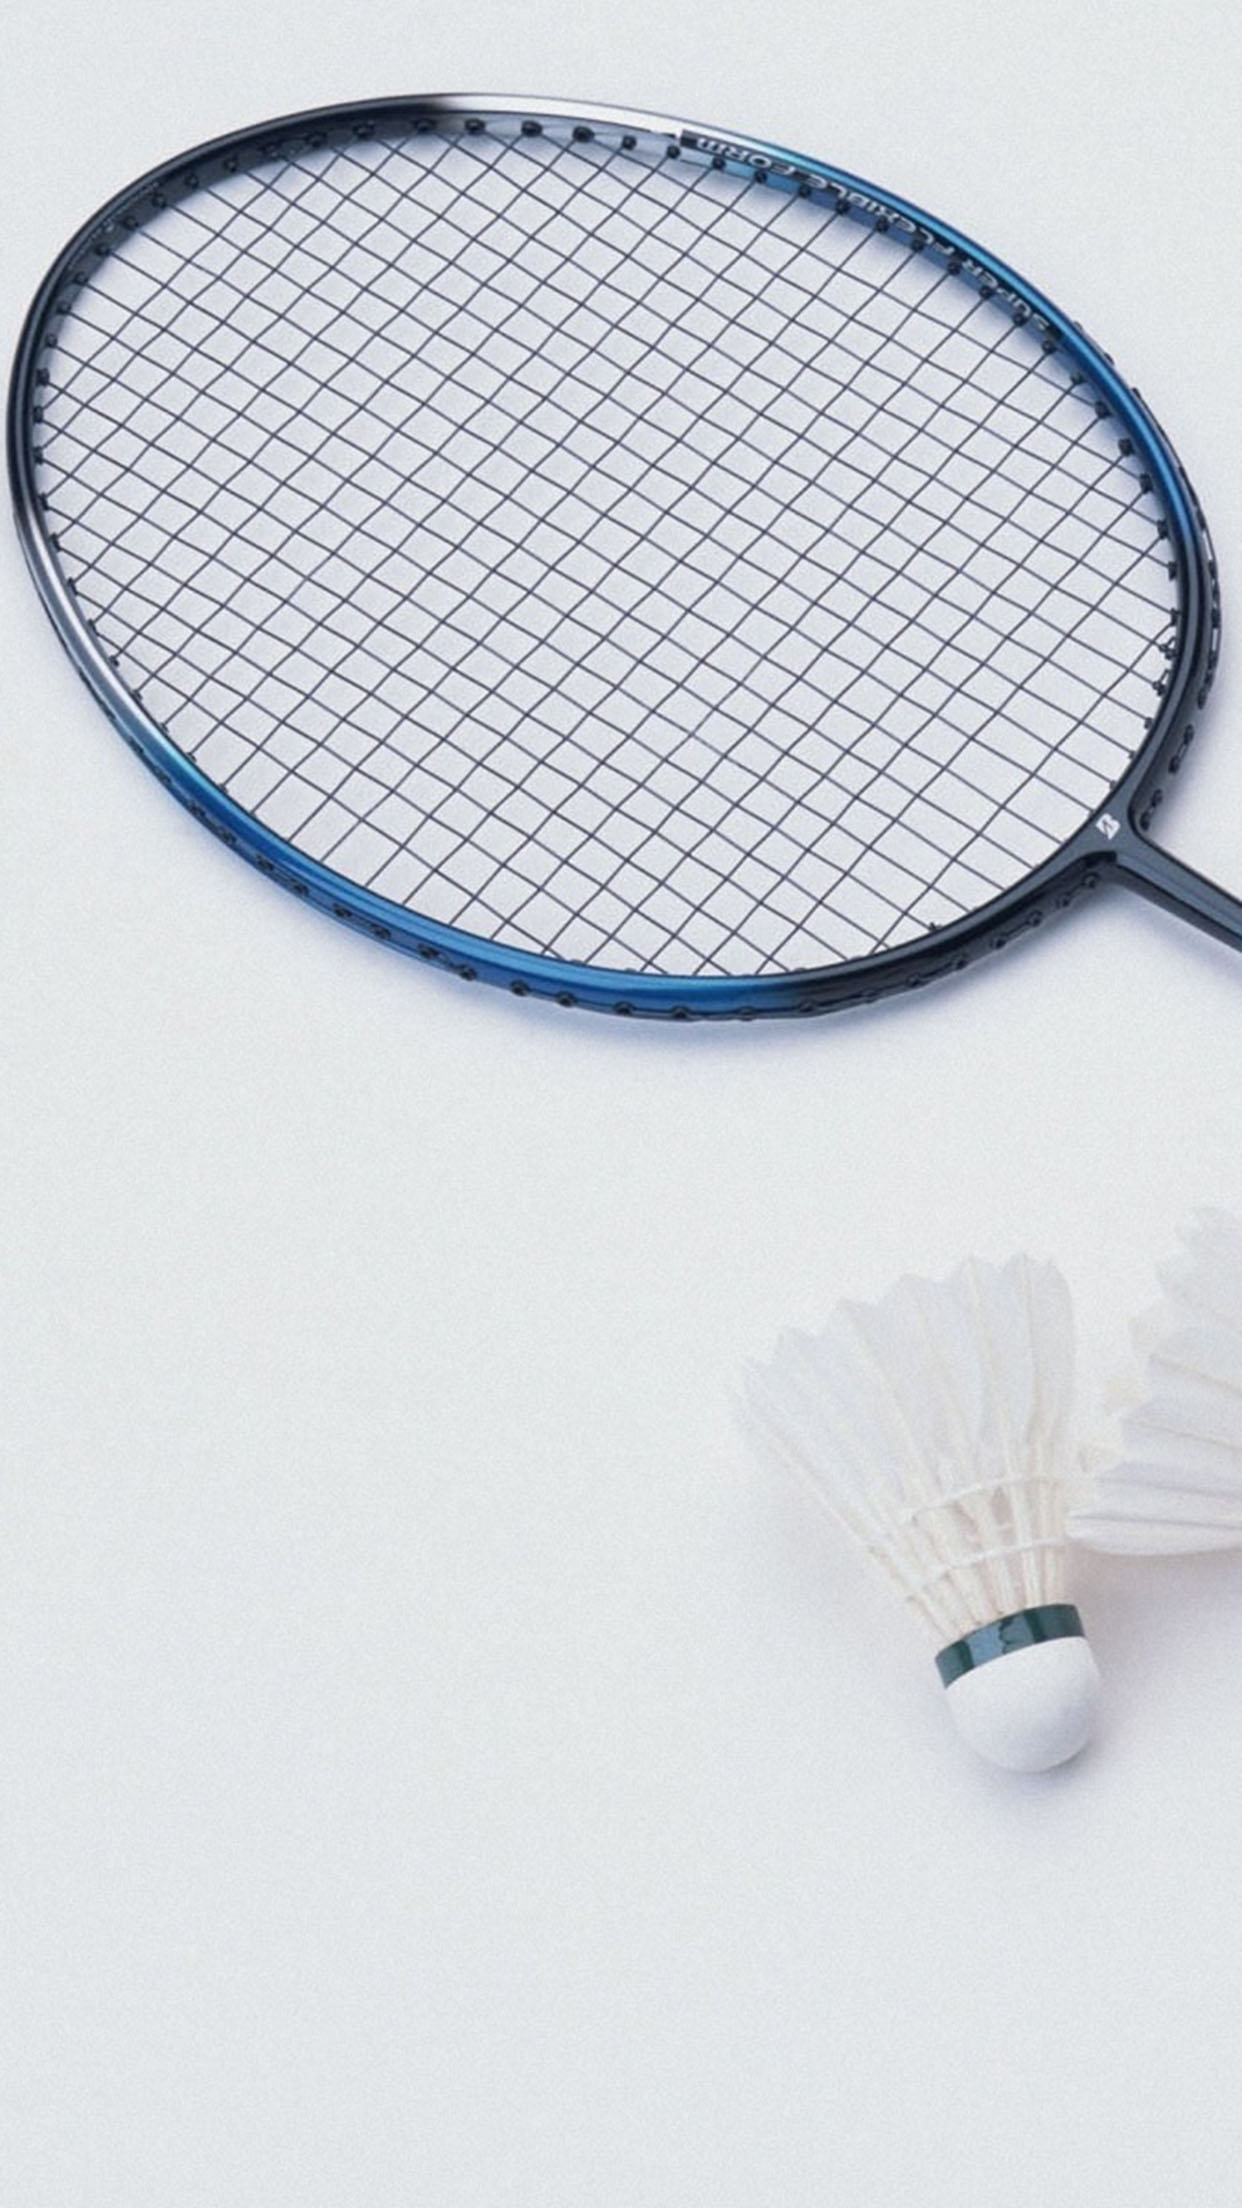 Badminton Badminton racquets 3Wallpapers iPhone Parallax Badminton racquets